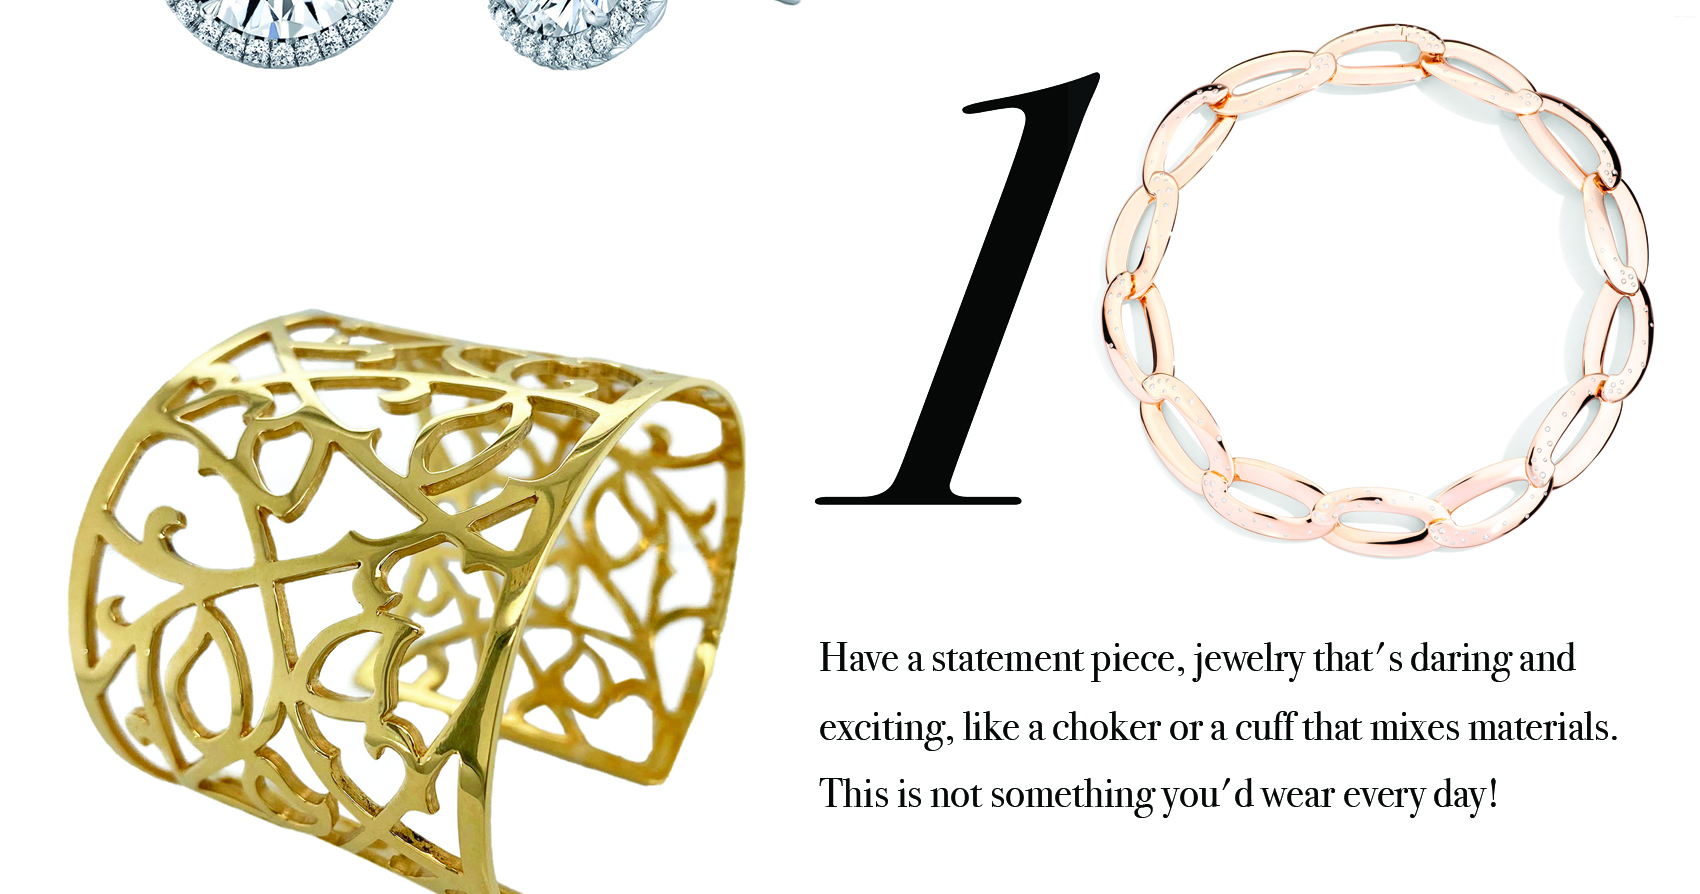 Your Jewelry Wardrobe Tip #10: Have a statement piece, jewelry that's daring and exciting, like a choker or a cuff that mixes materials. This is not something you'd wear every day.